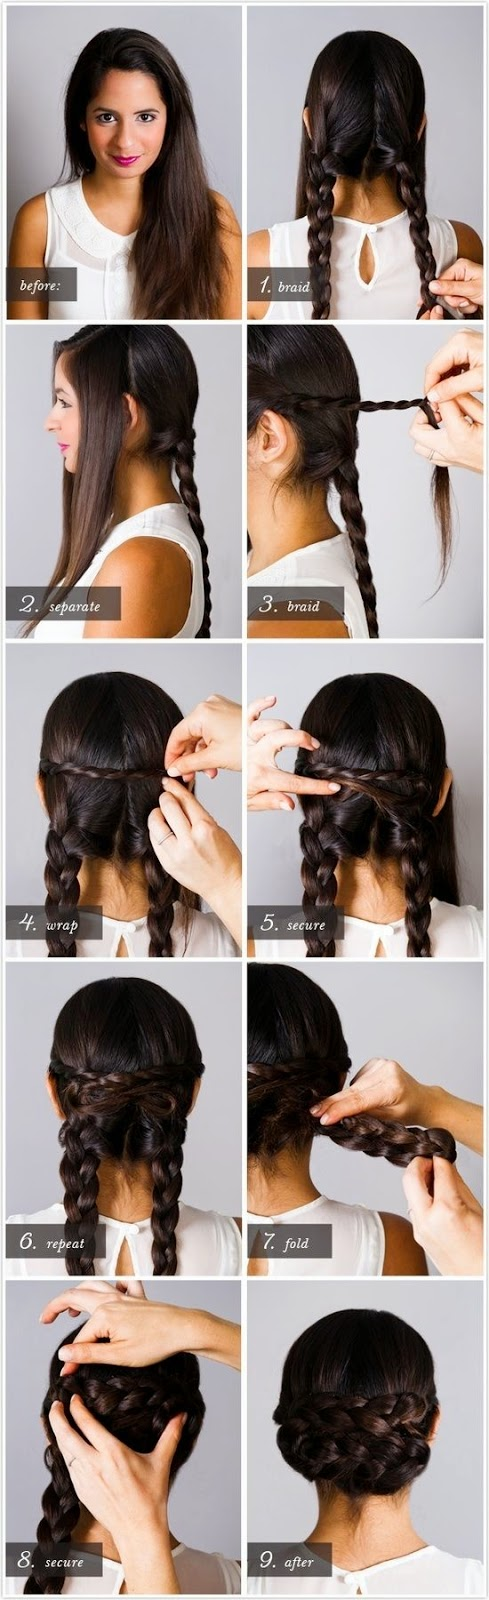 5 Simple and Cute Hairstyle Tutorials